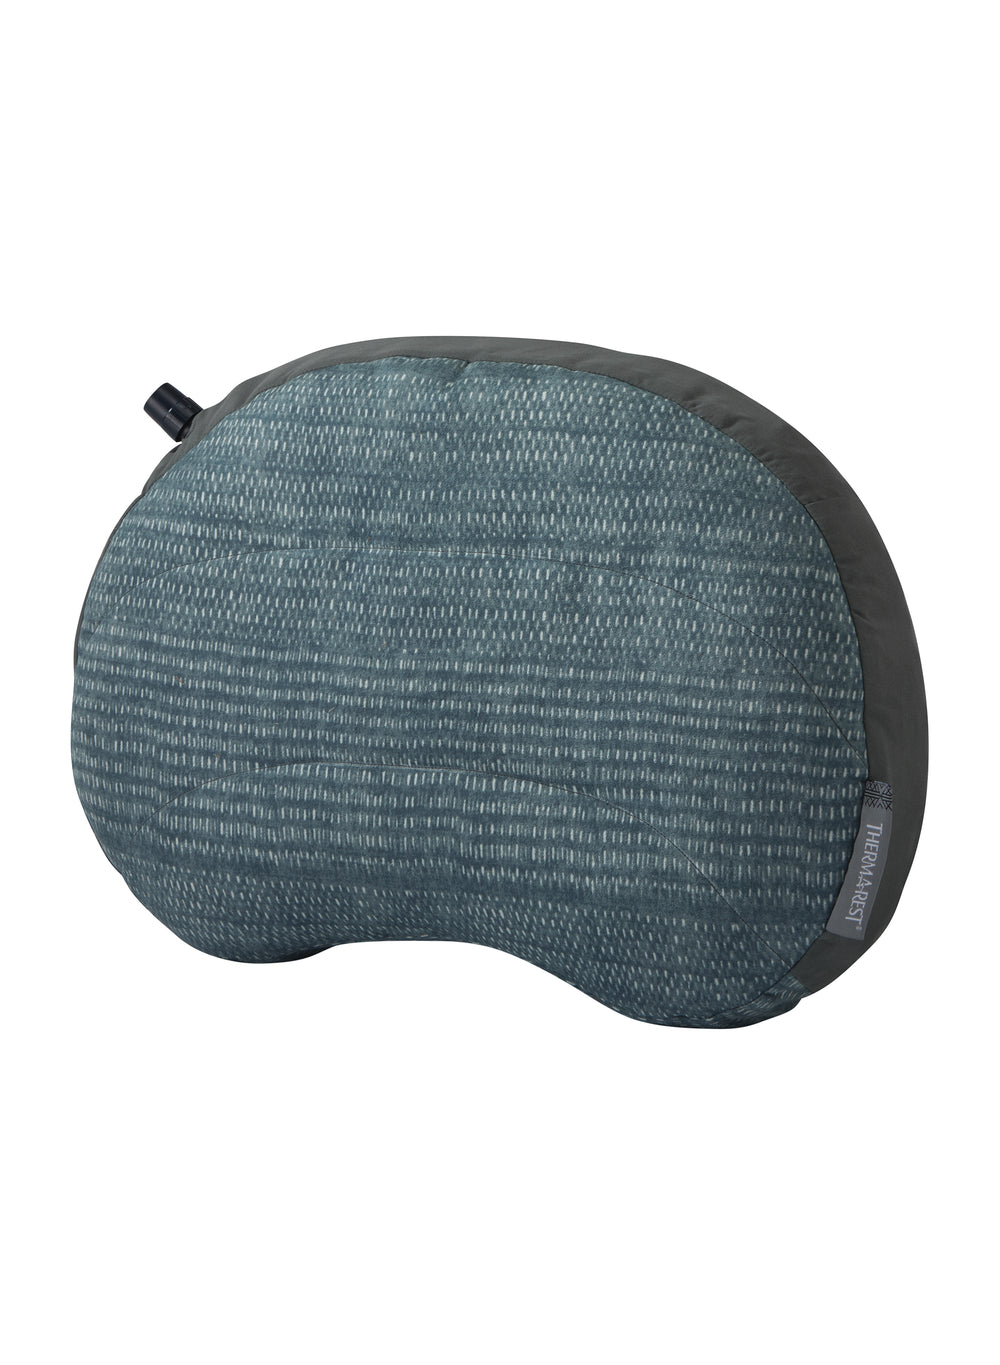 Thermarest Air Head Pillow - Classic Valve